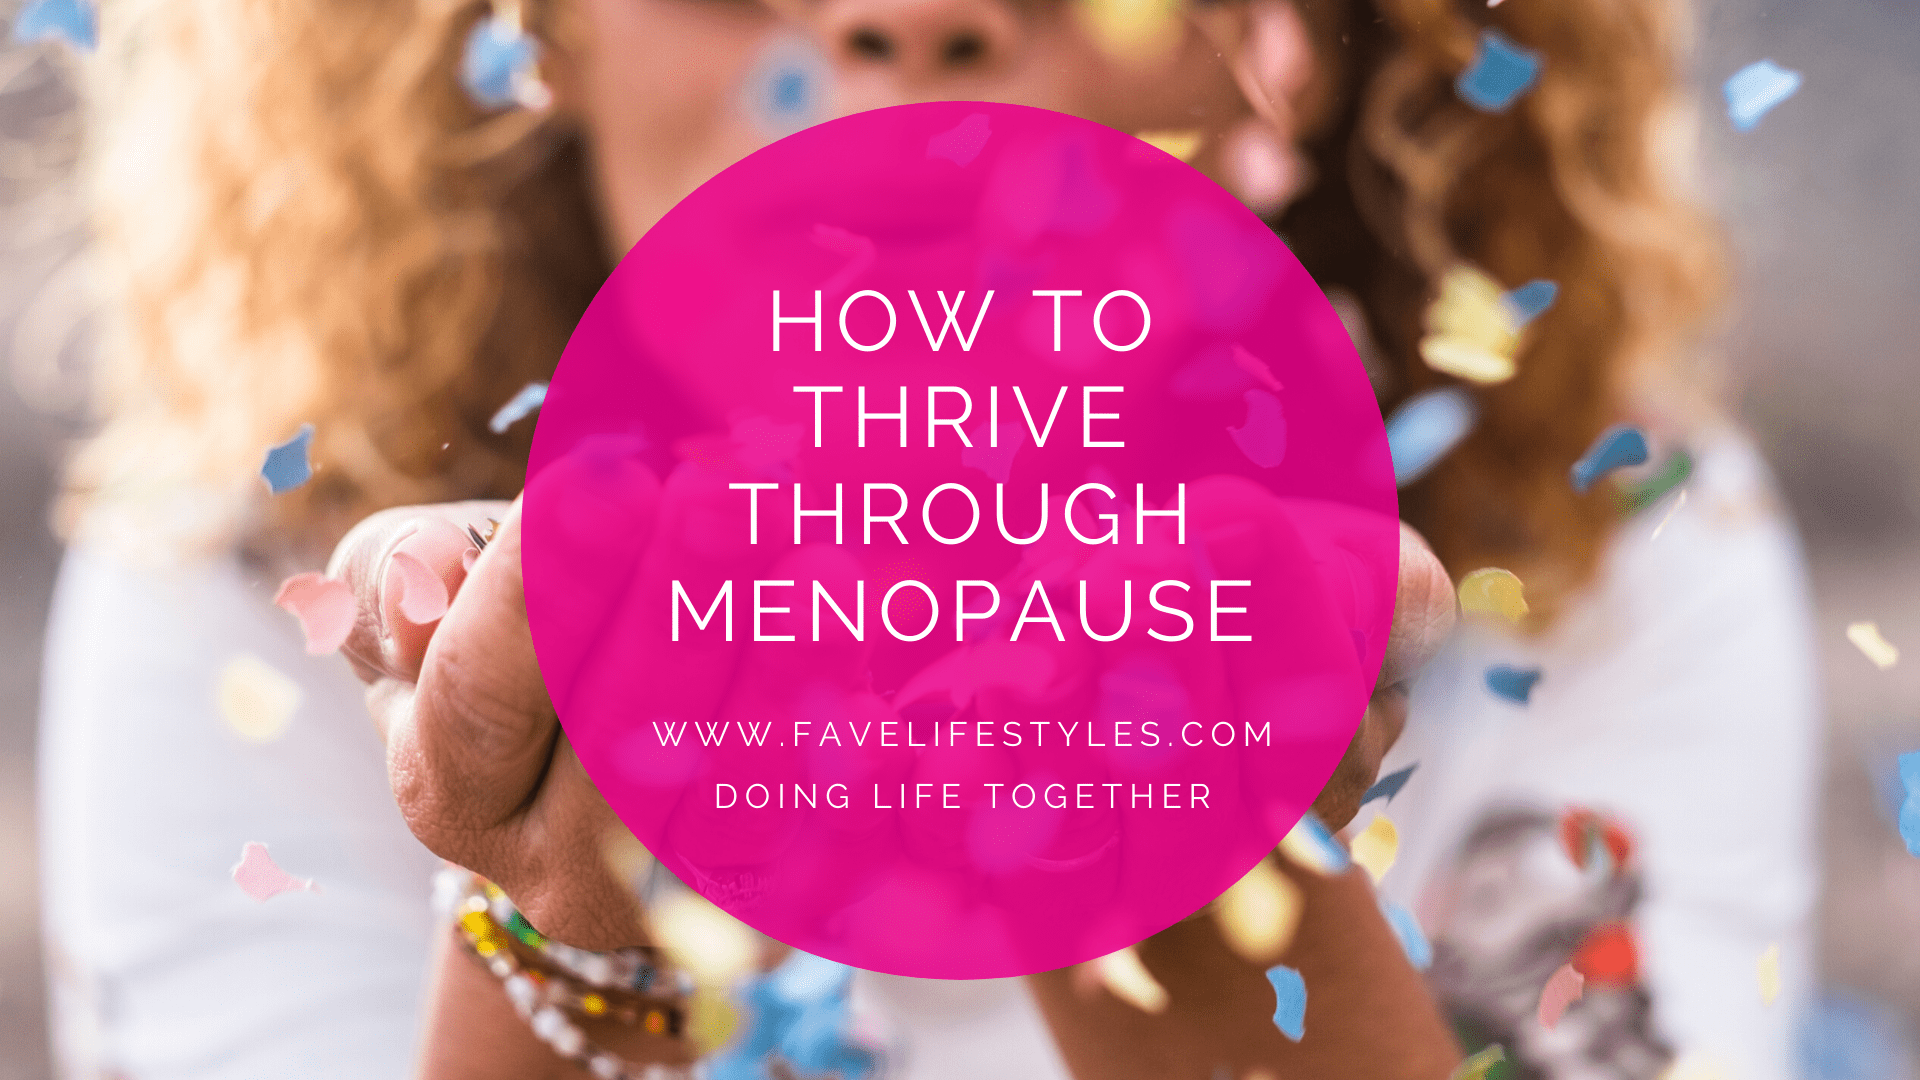 How To Thrive Through Menopause